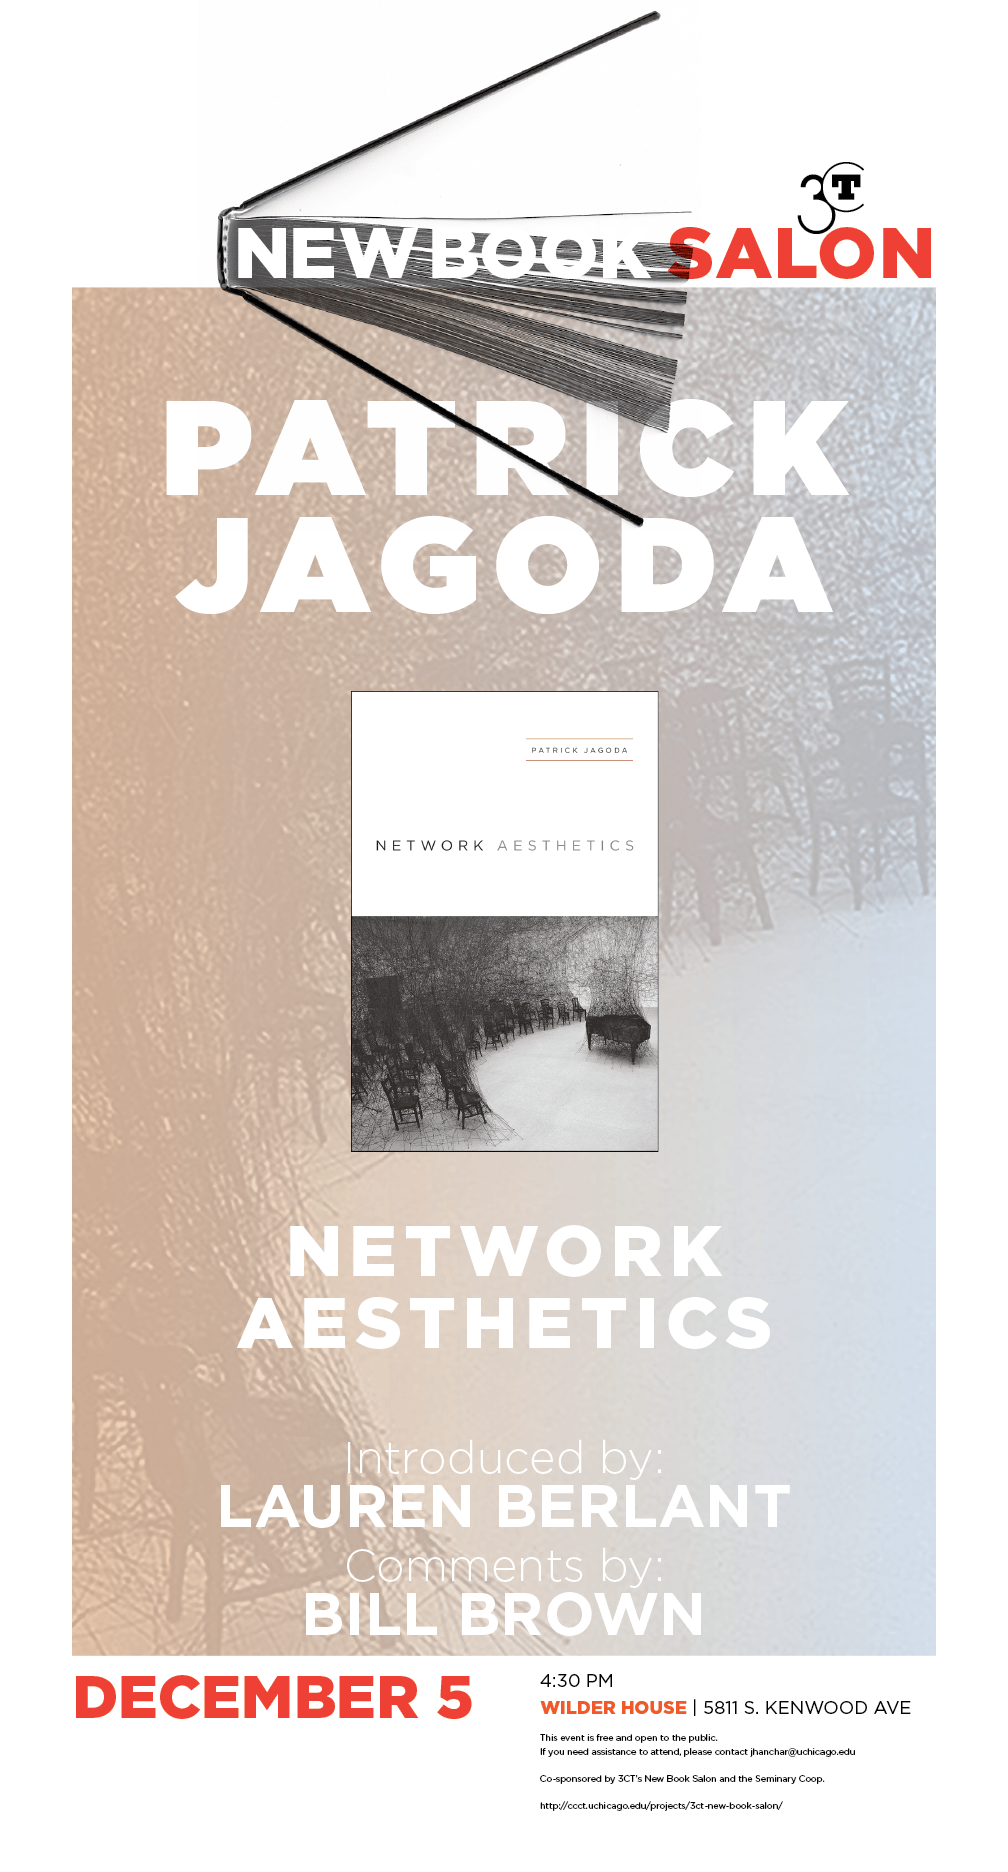 Poster for New book salon: Network Aesthetics by Patrick Jagoda